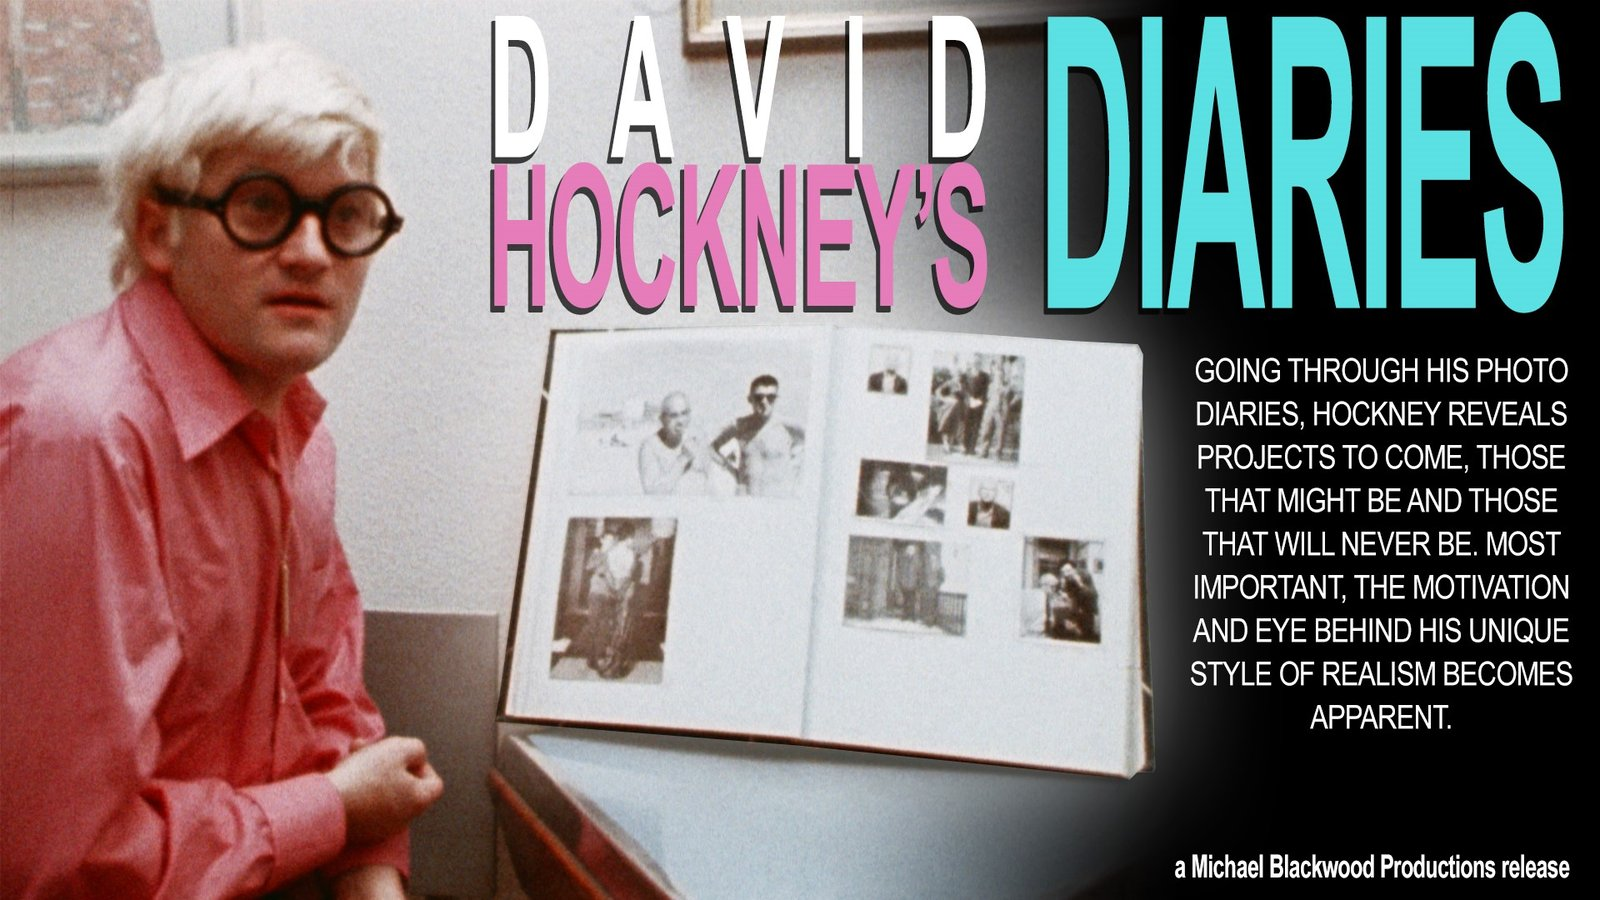 David Hockney's Diaries - The Inspiration of a Legendary Artist